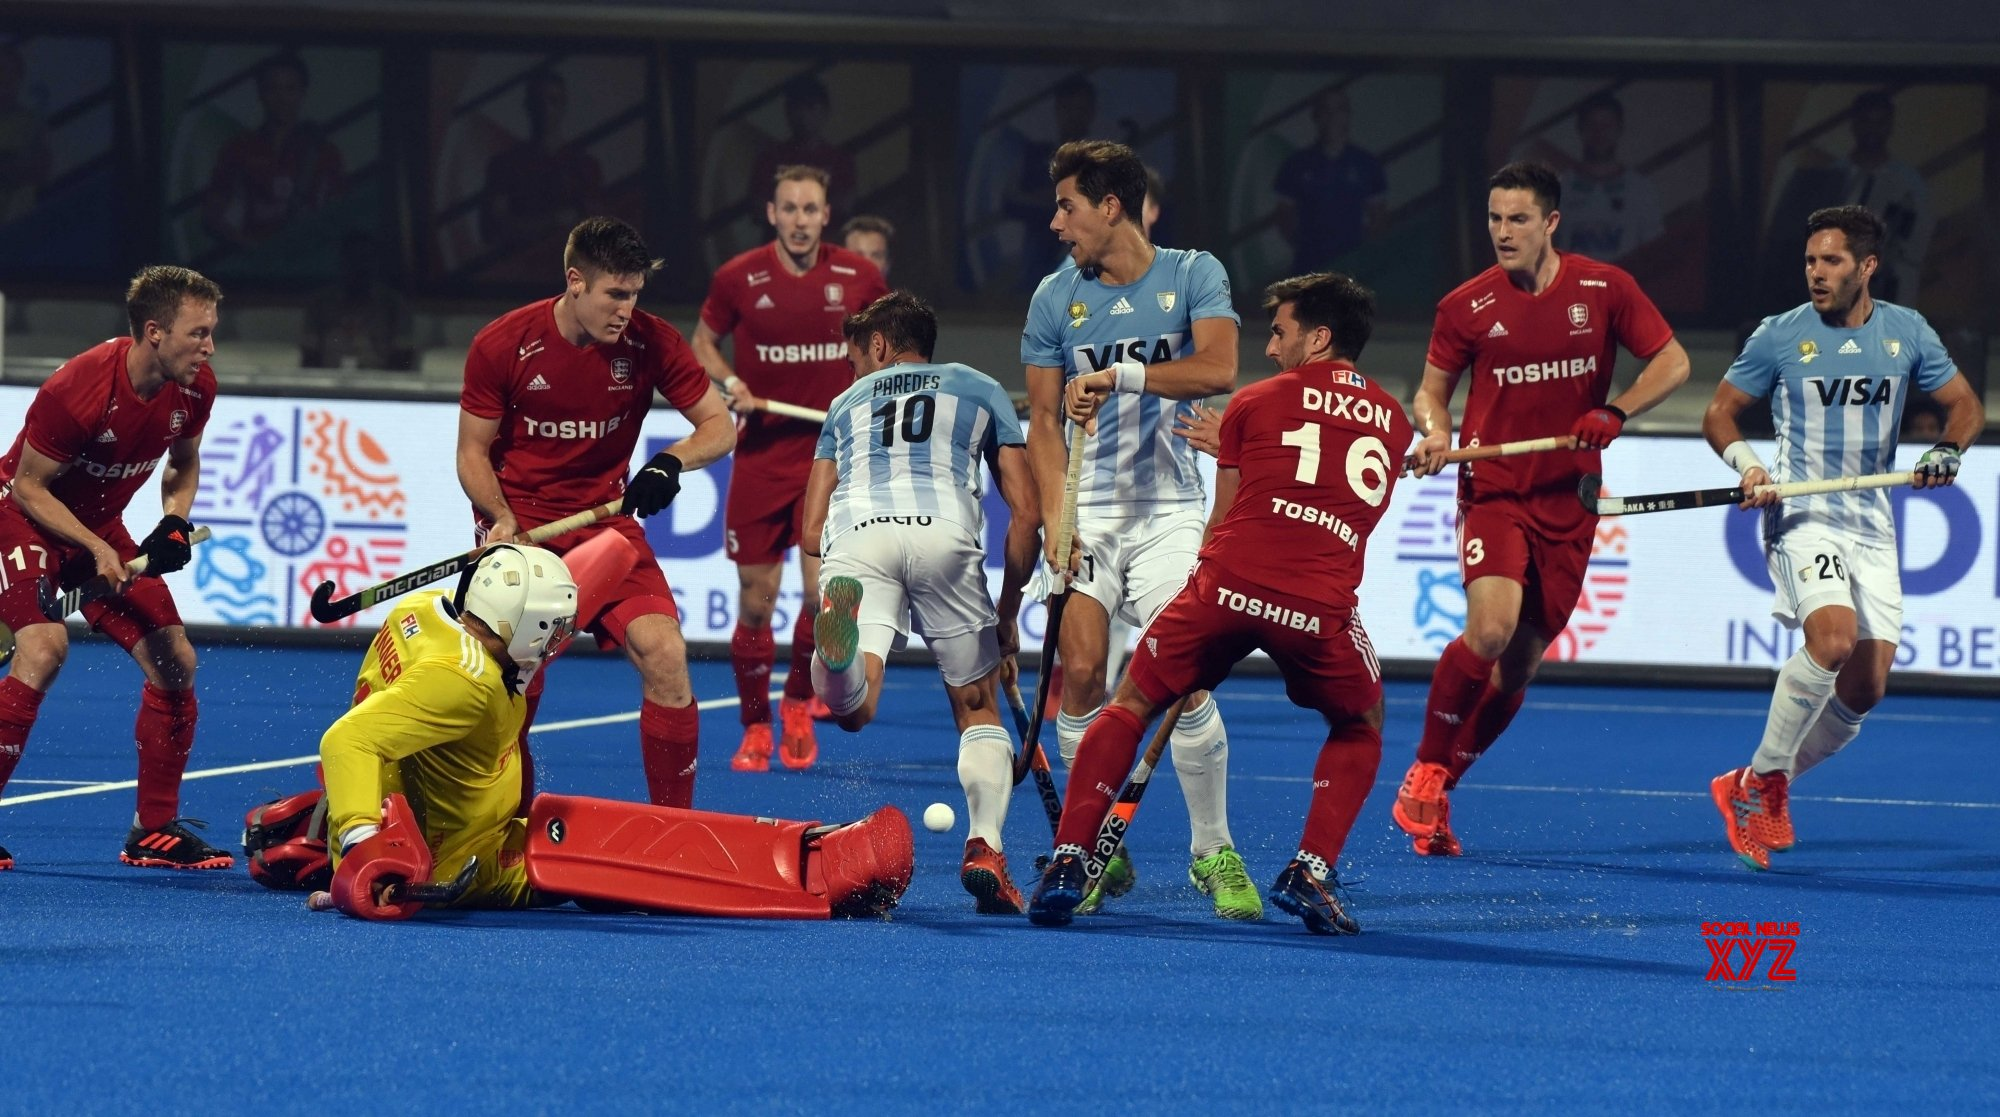 FIH World Cup: England beat Argentina to enter semis